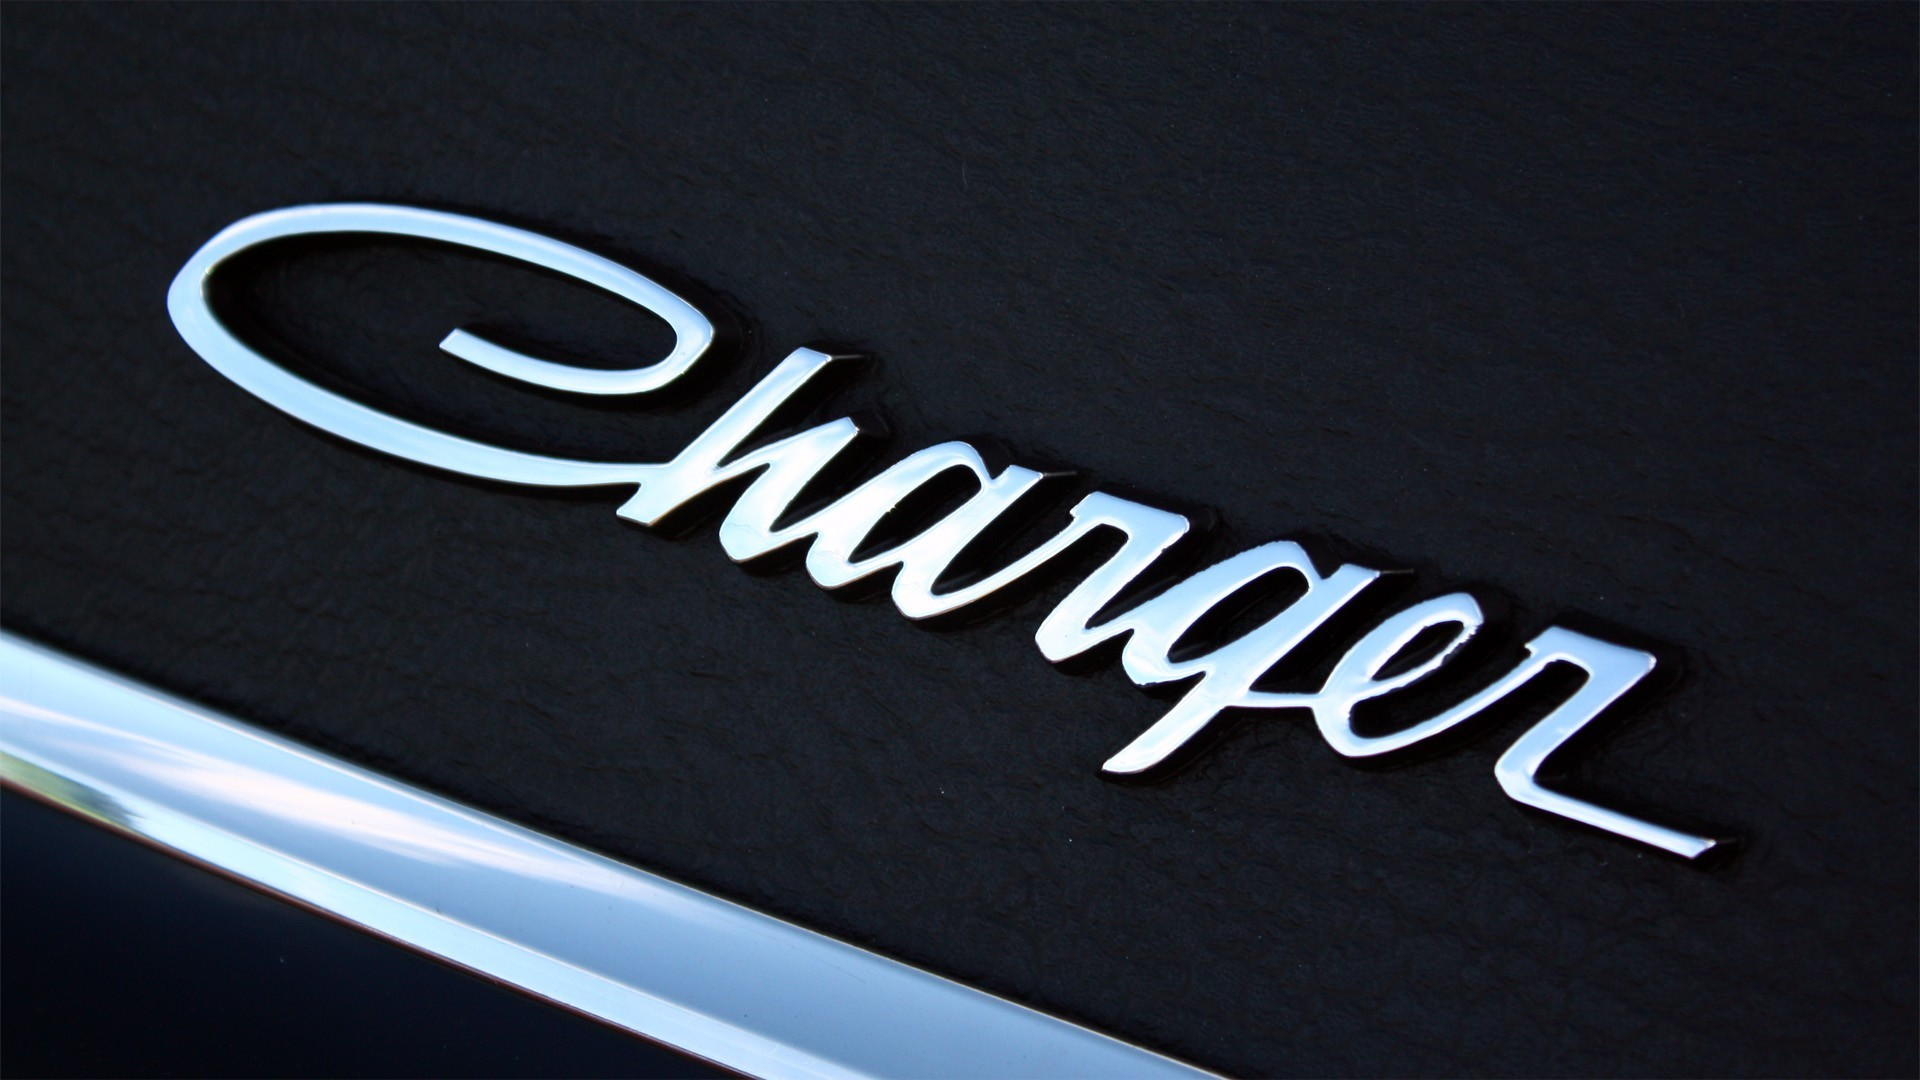 Dodge Charger Logo Hd Logo 4k Wallpapers Images Backgrounds